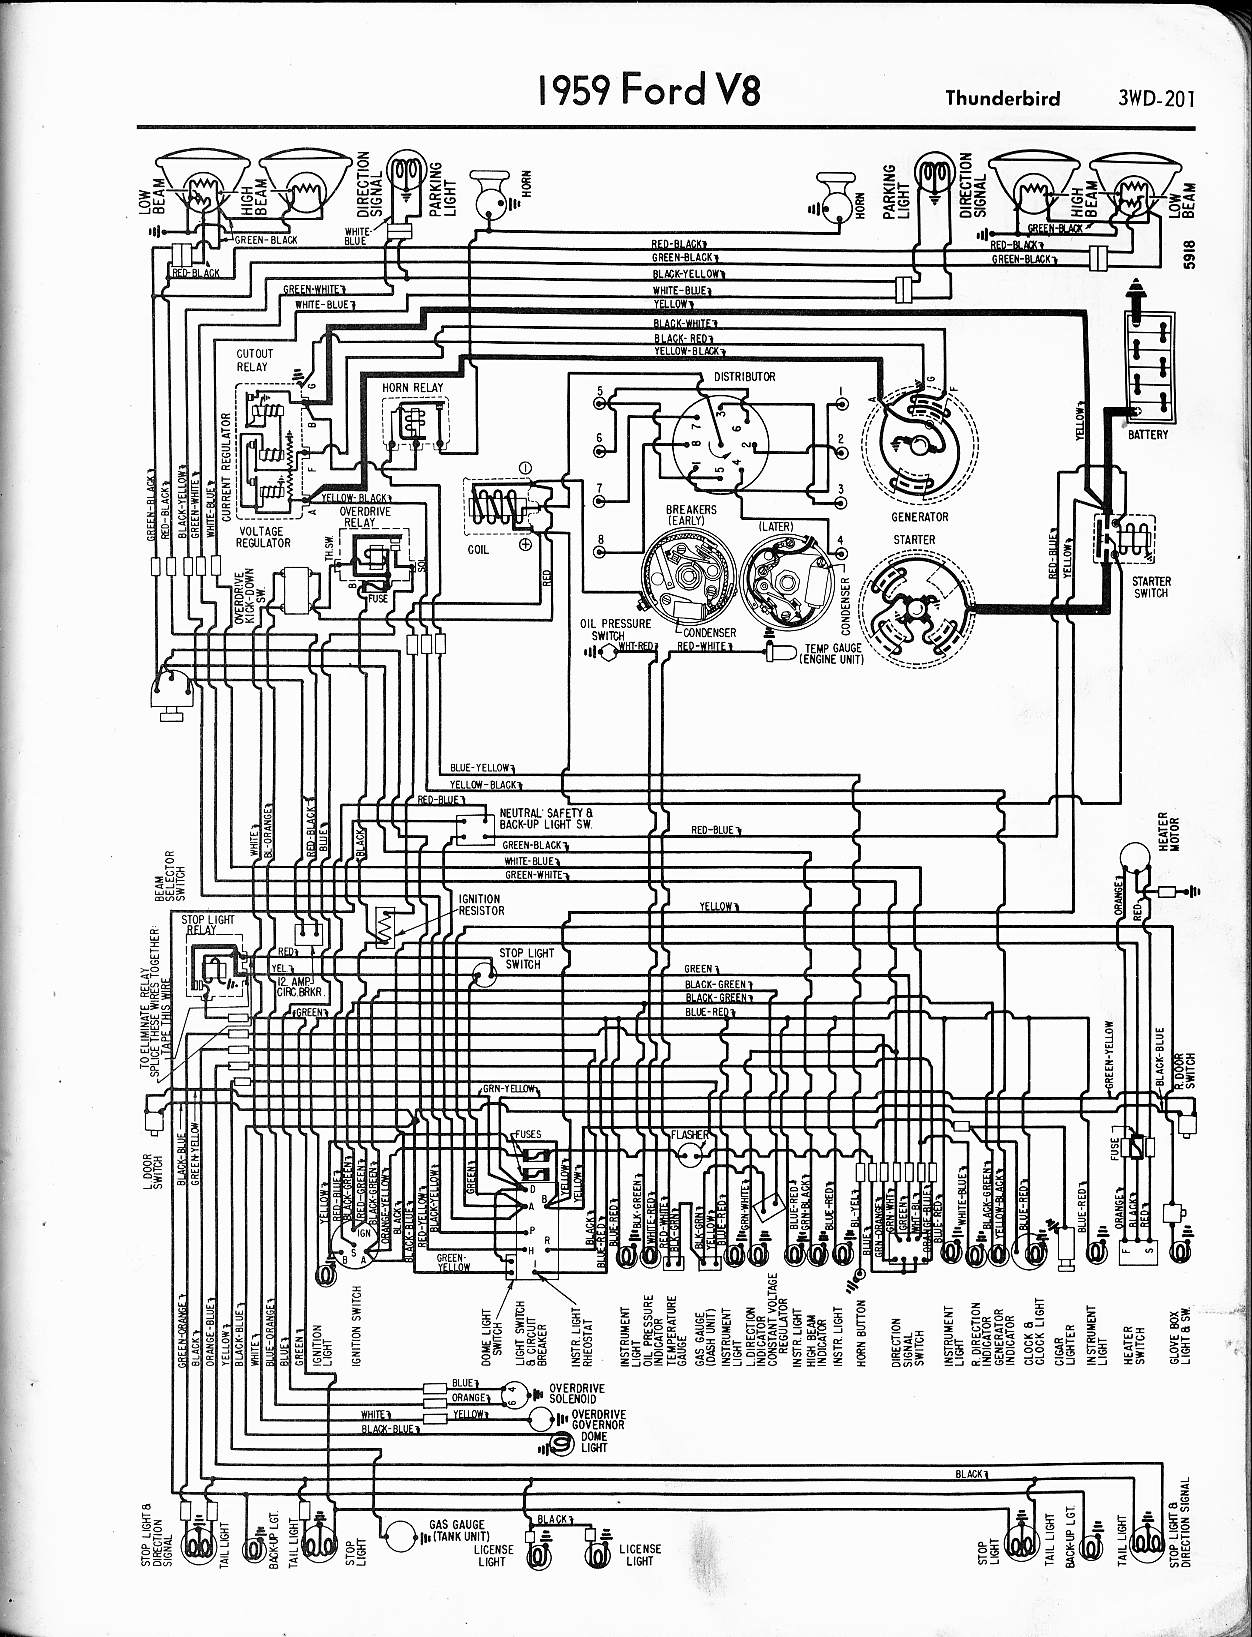 57 65 Ford Wiring Diagrams Diagram Moreover Harley Davidson Rear Speaker Harness 1959 Thunderbird